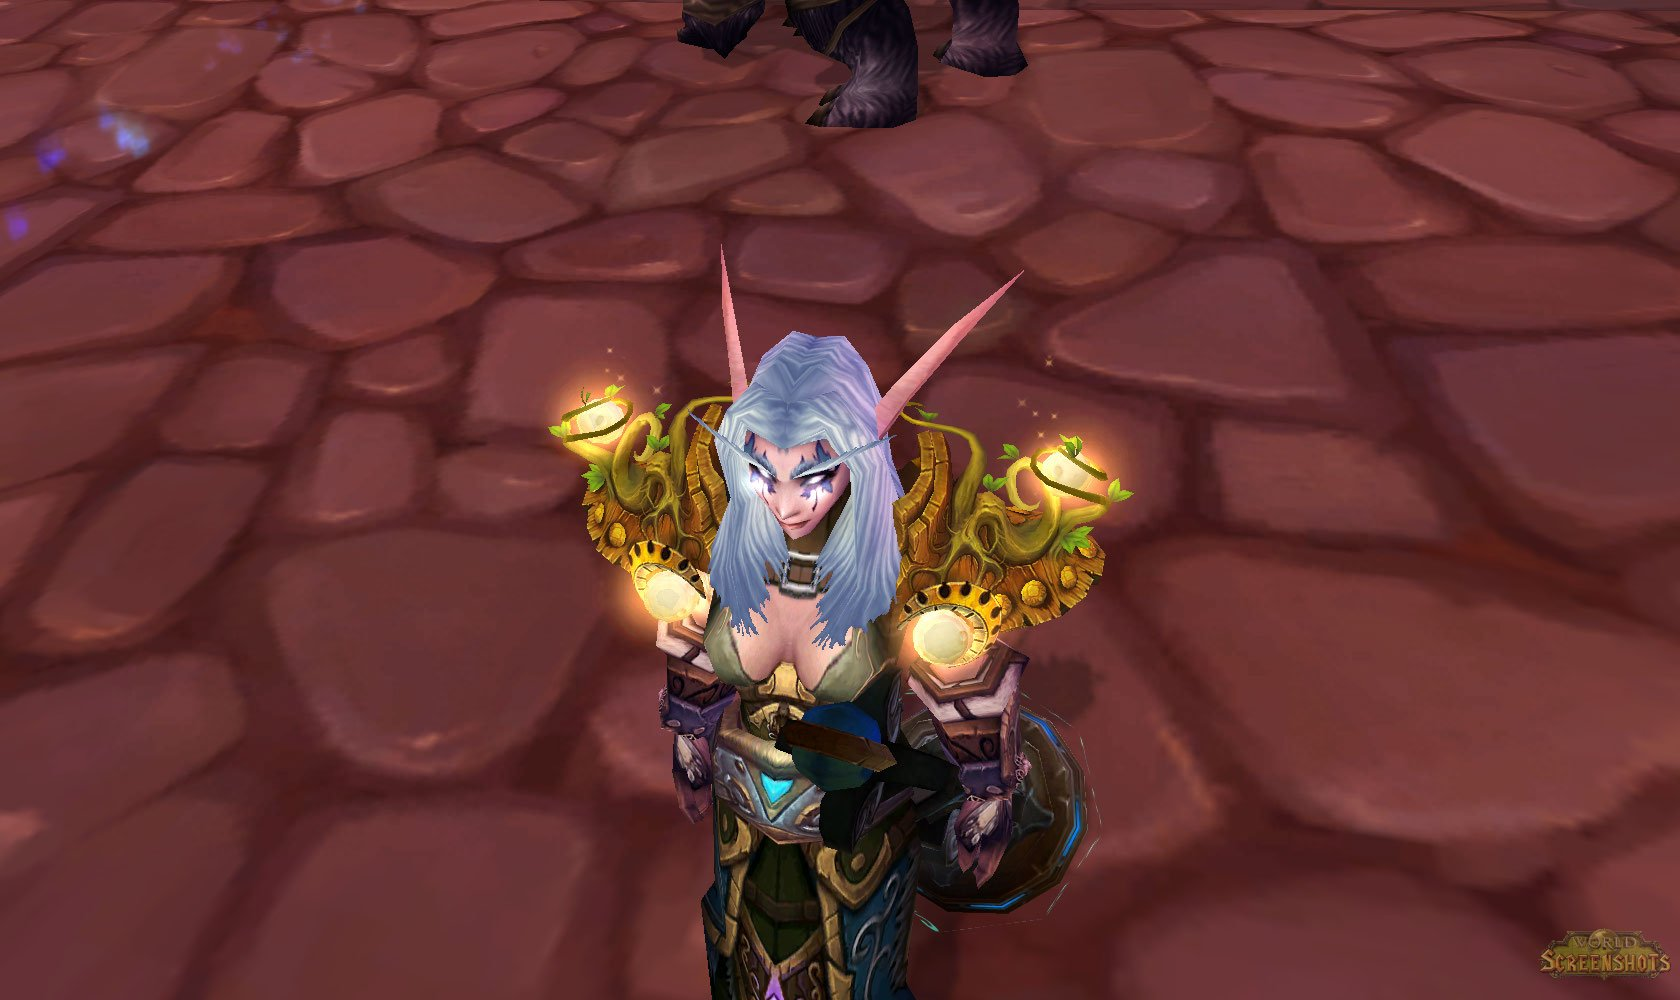 Wow night elf woman nackt xxx pictures